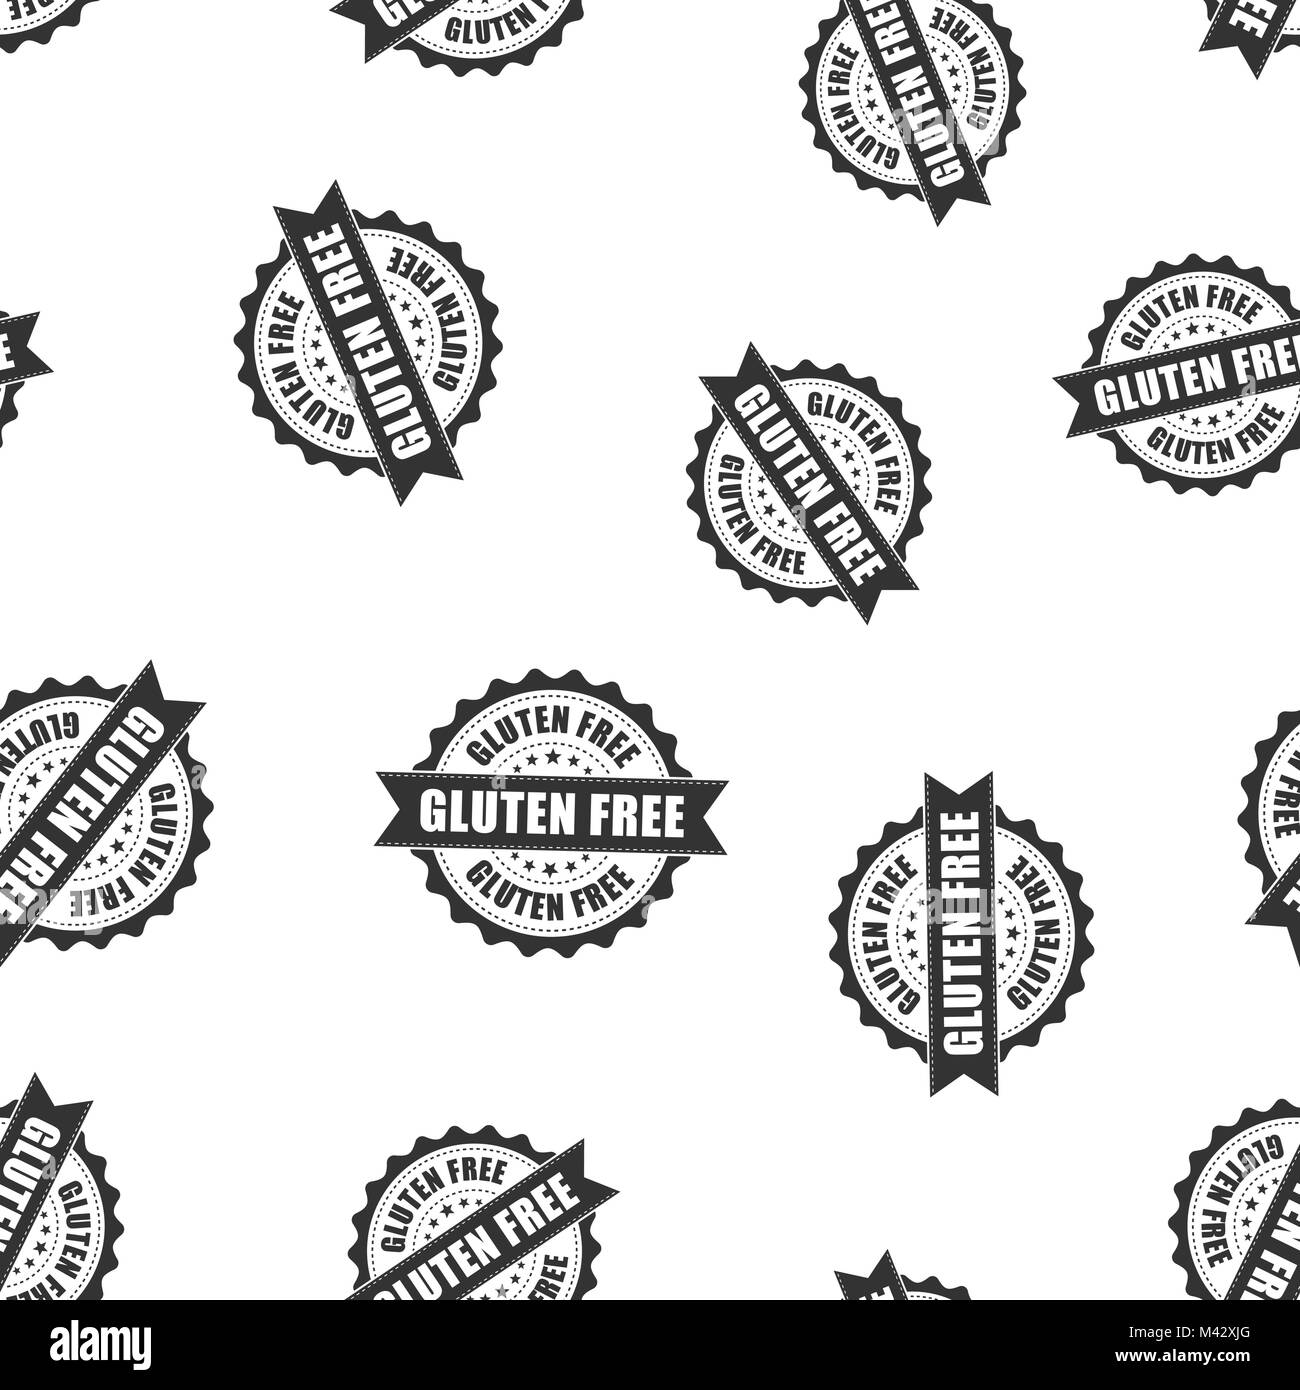 Gluten free rubber stamp seamless pattern background  Business Stock